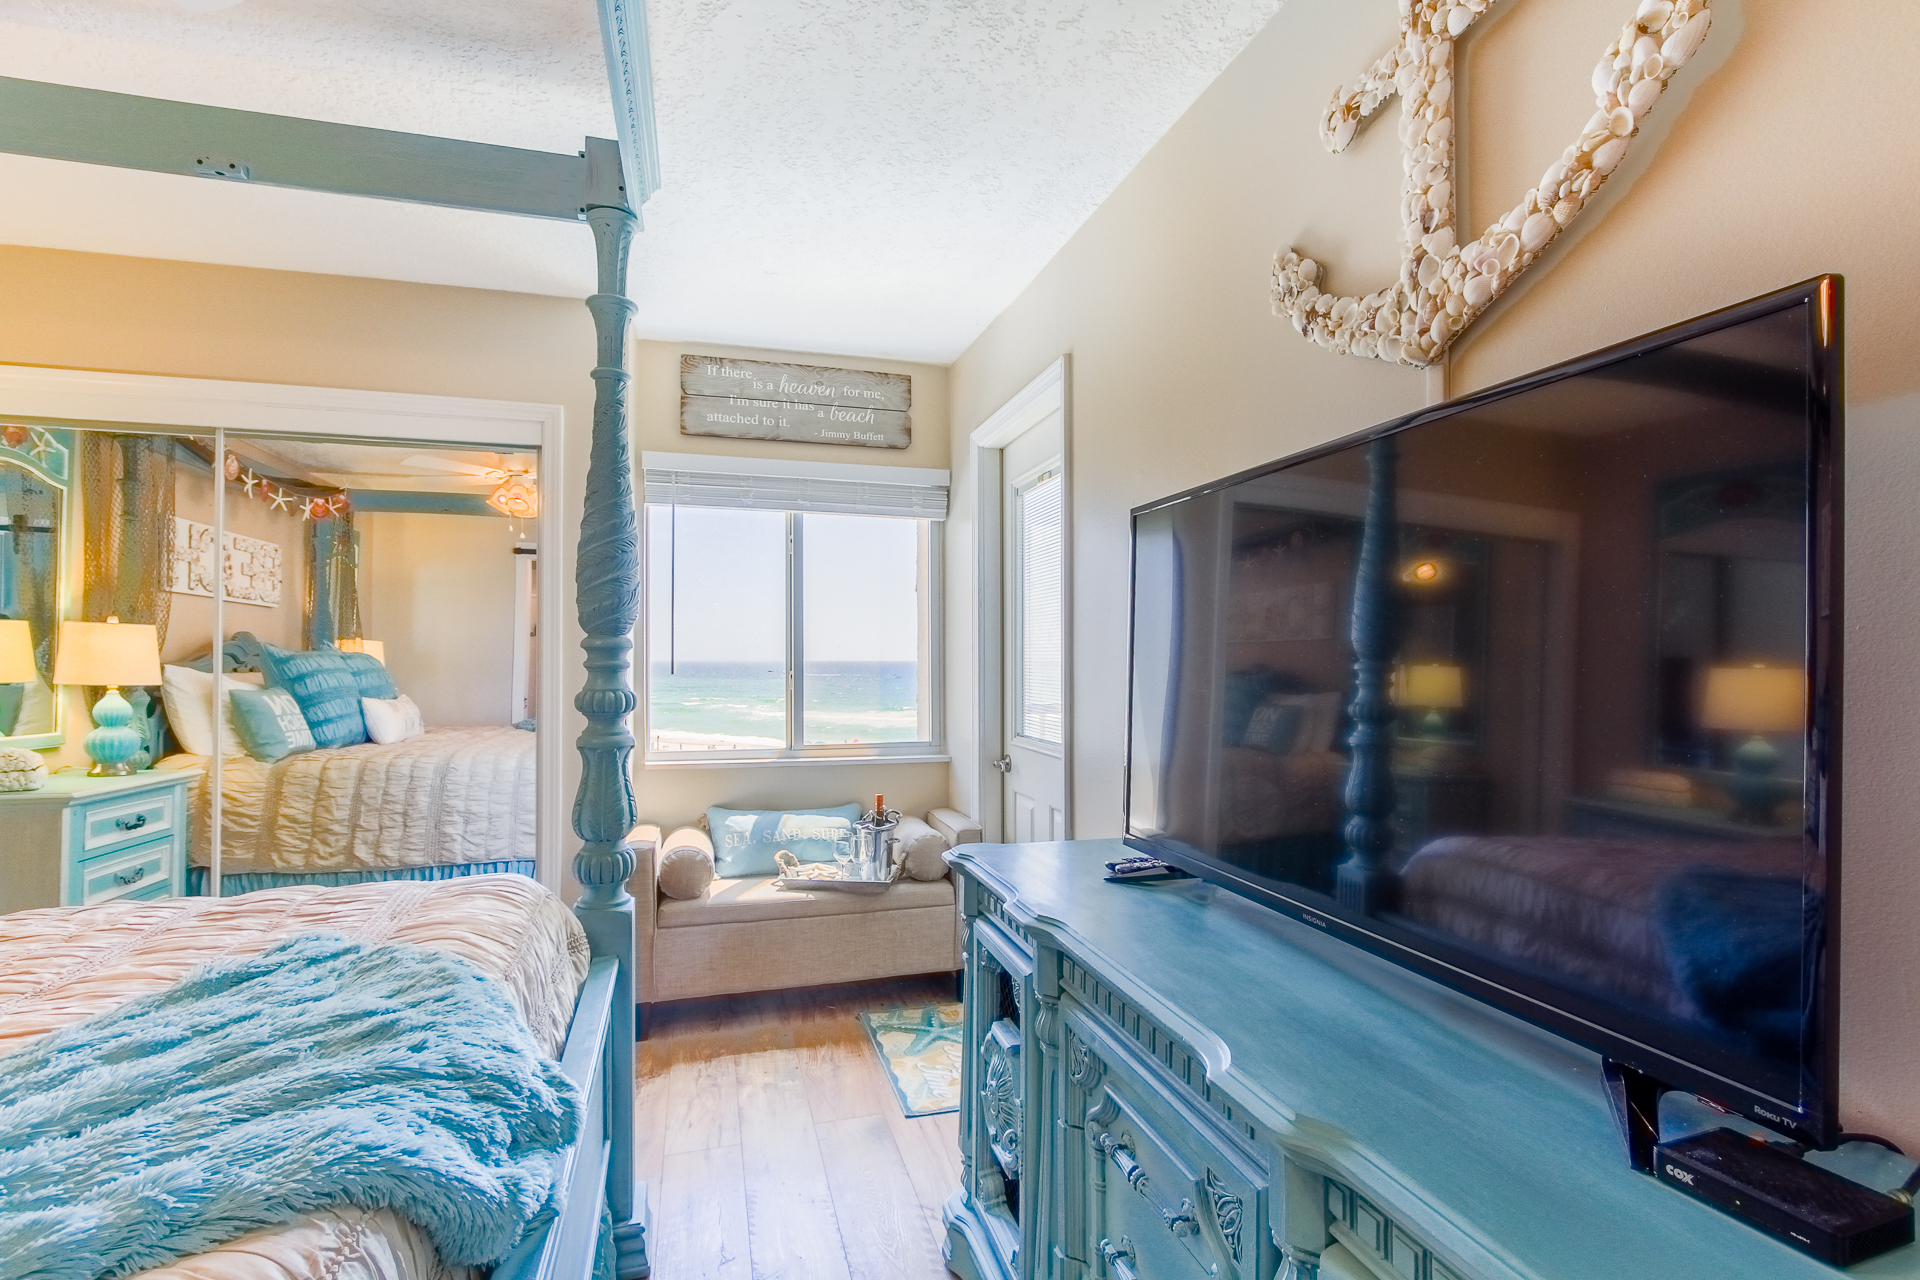 Holiday Surf & Racquet Club 407 Condo rental in Holiday Surf & Racquet Club in Destin Florida - #24